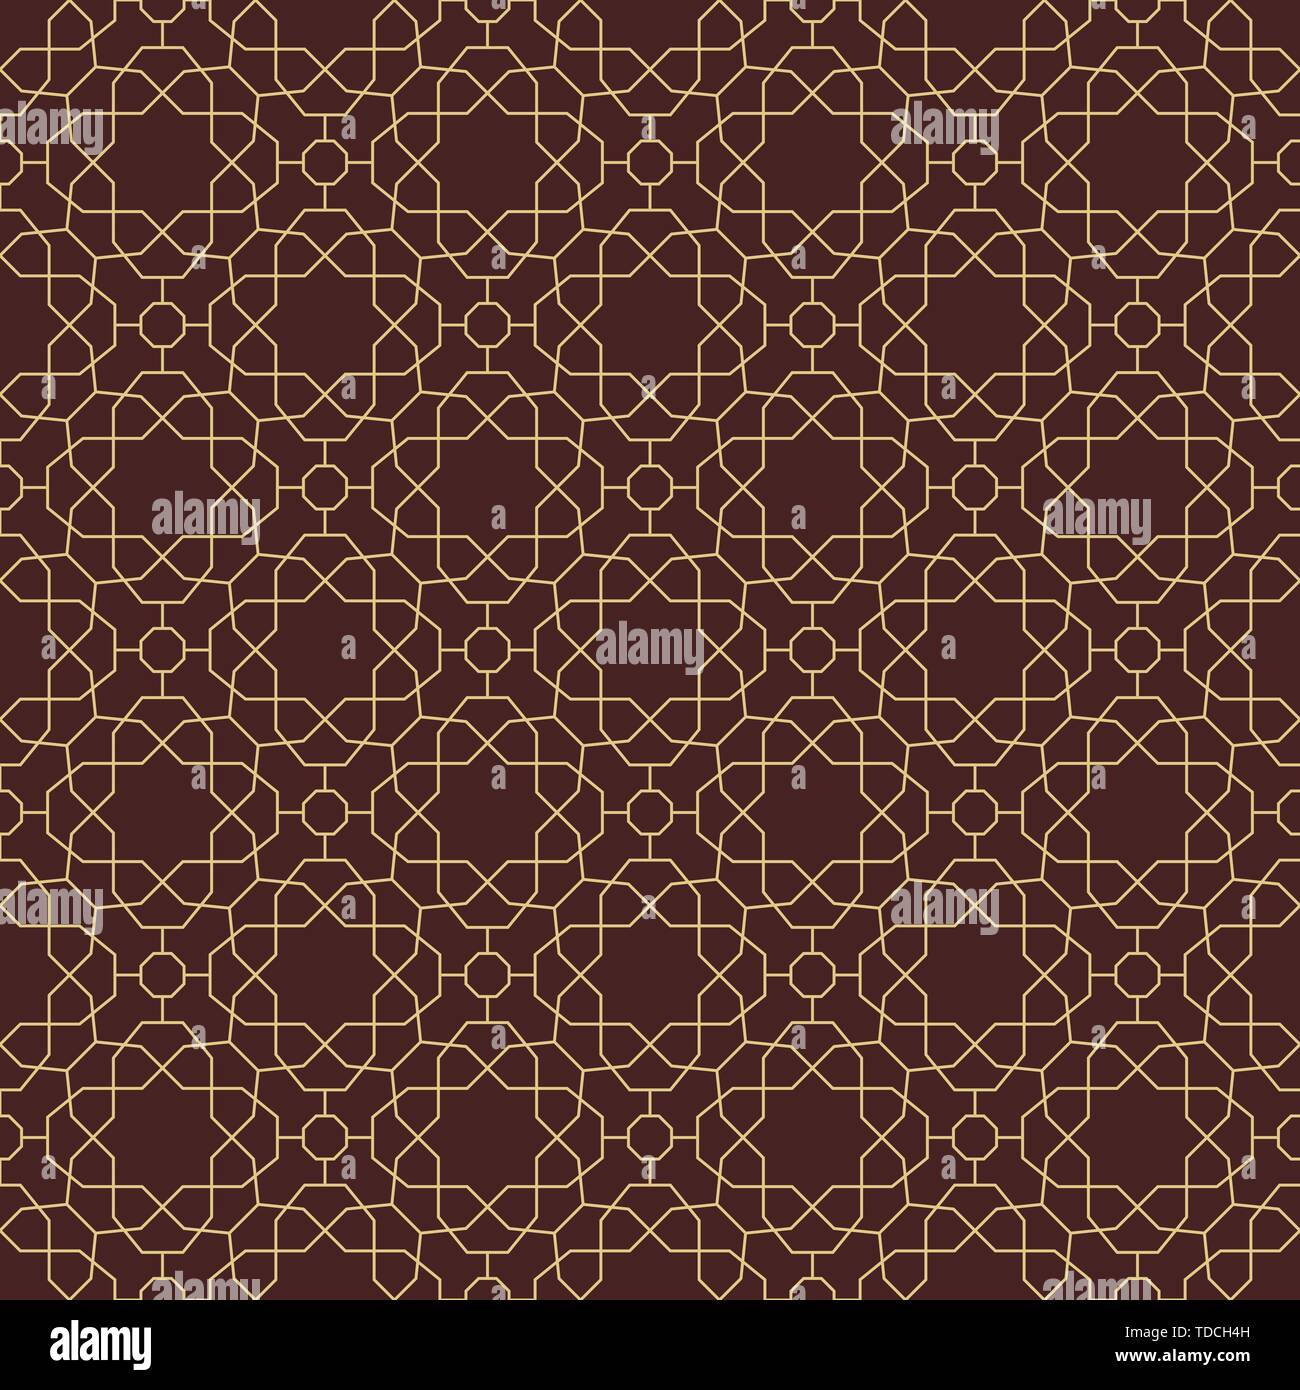 Seamless Geometric Vector Background - Stock Image